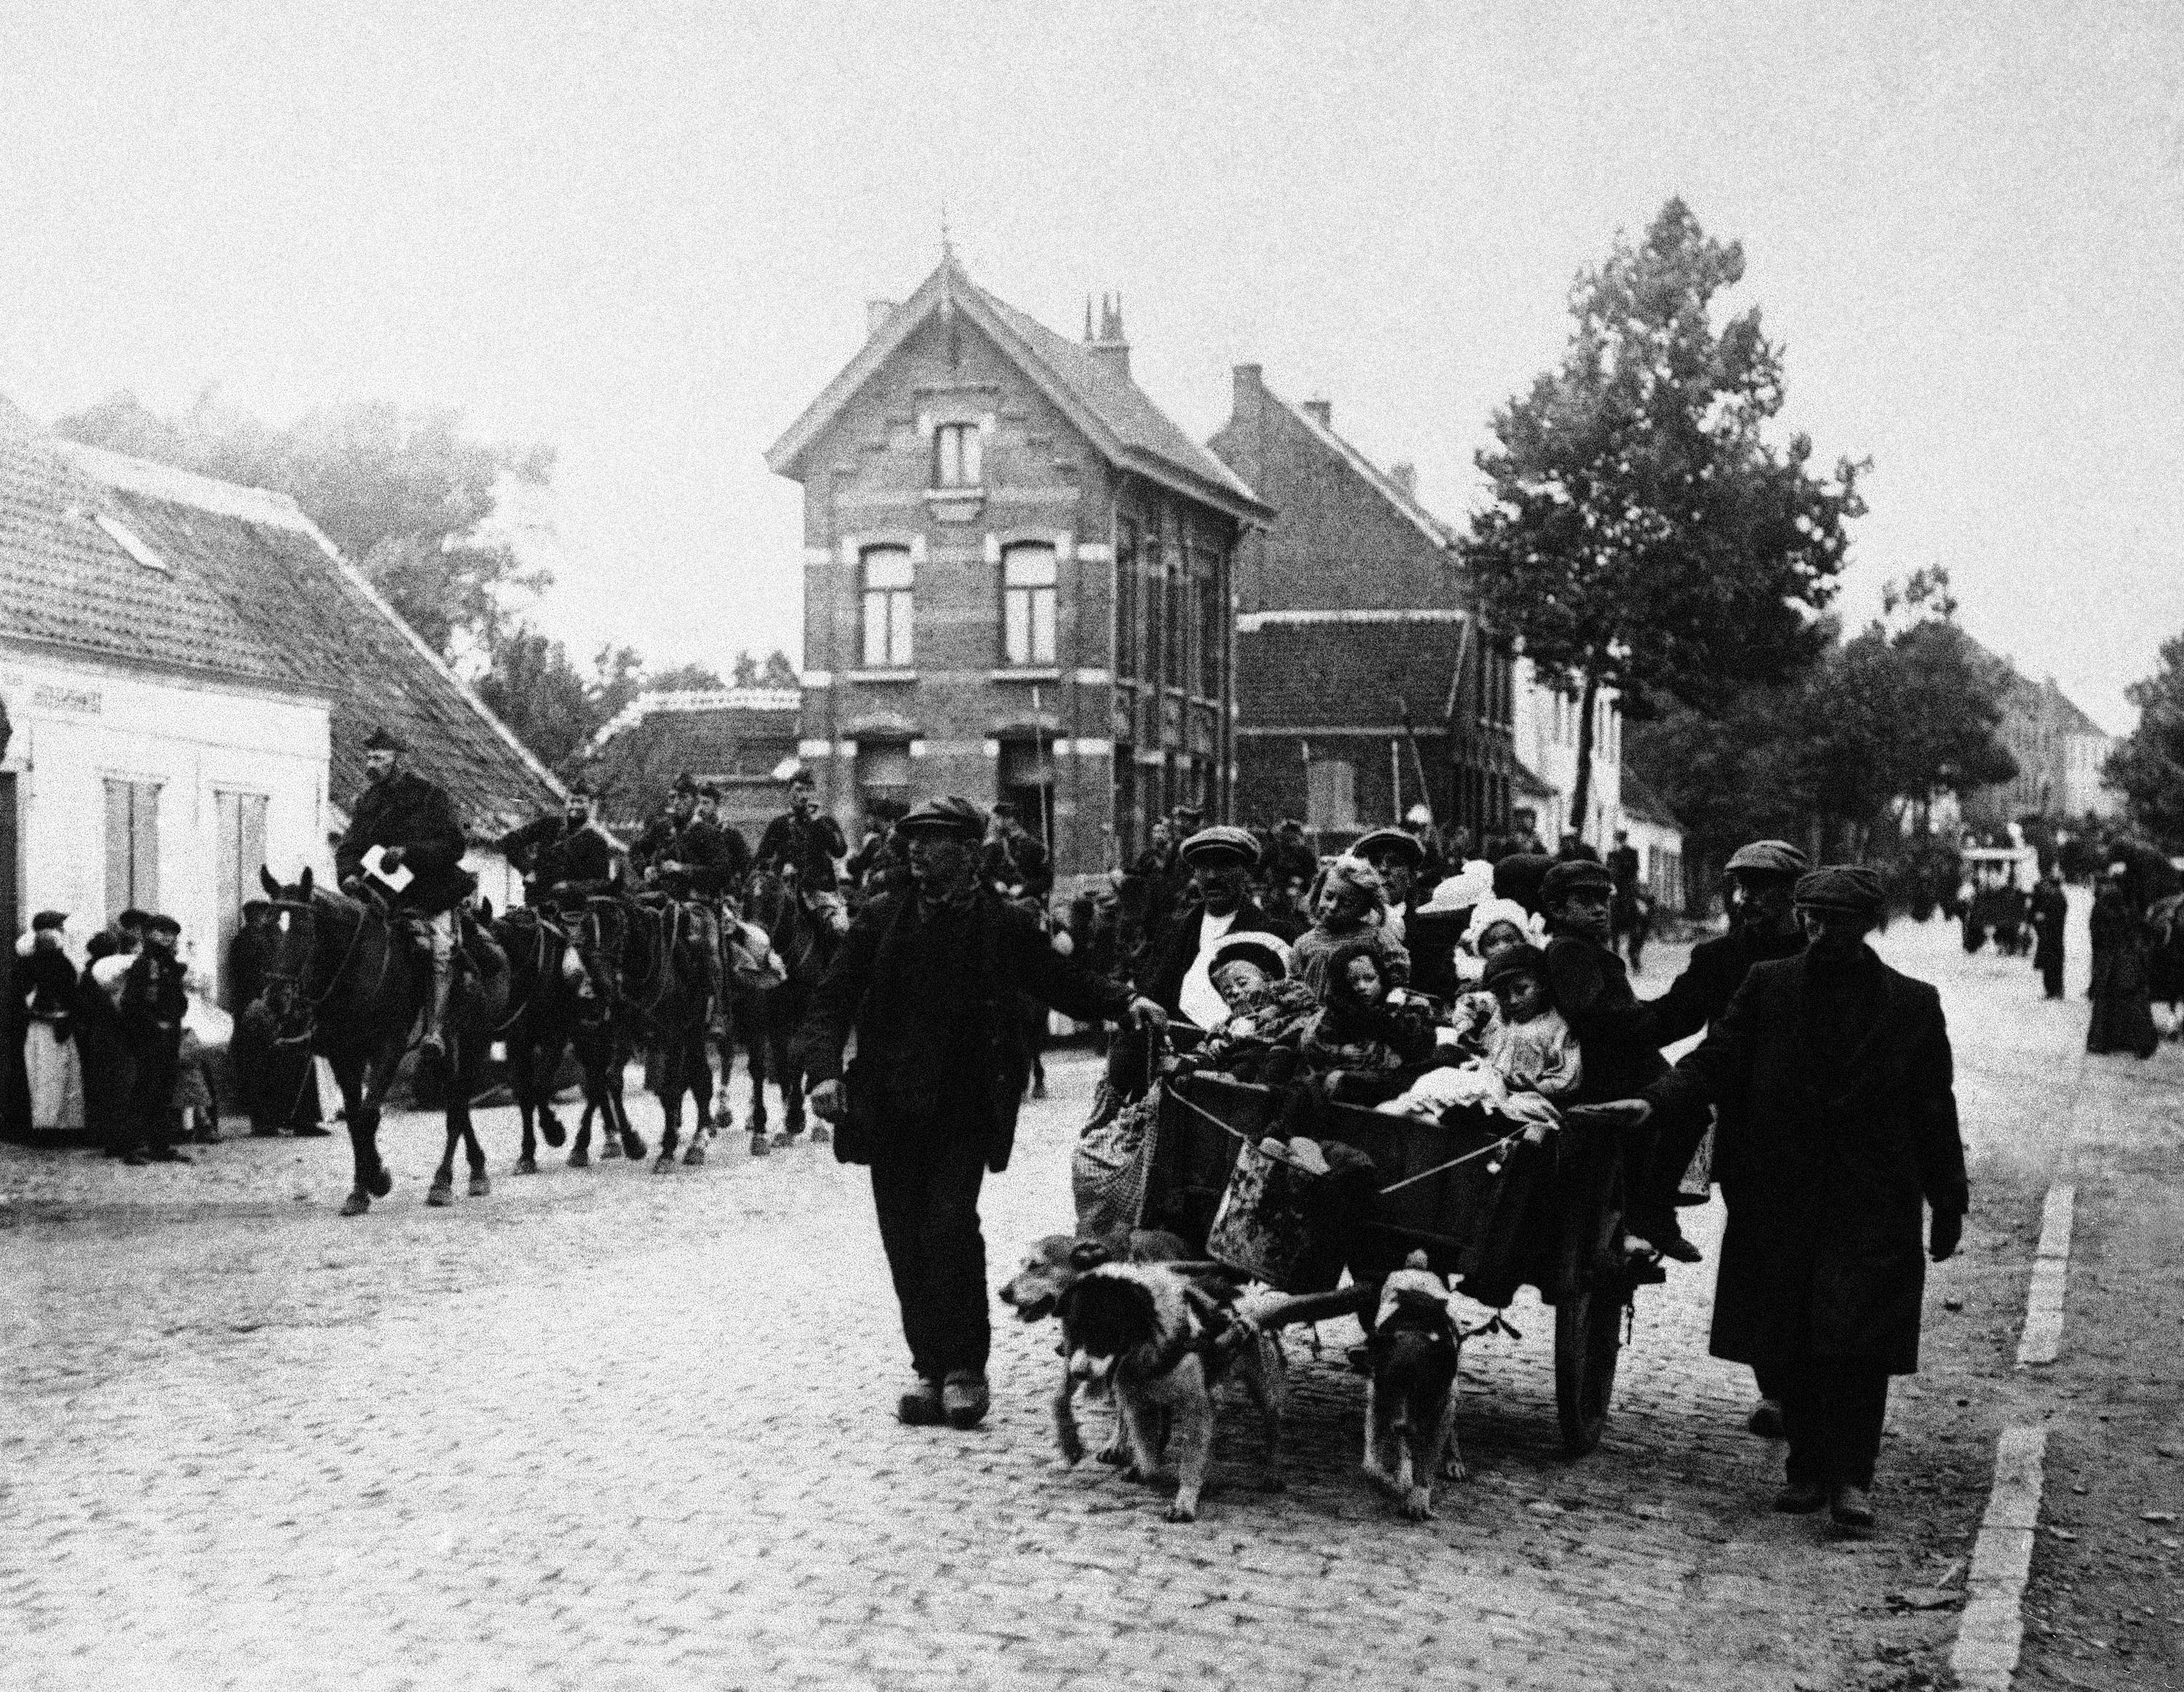 19 OF 100: In this October 14, 1914, file photo, Belgian civilians and a cavalry detail move out of the pathway of the German advance during World War I in Antwerp, Belgium.